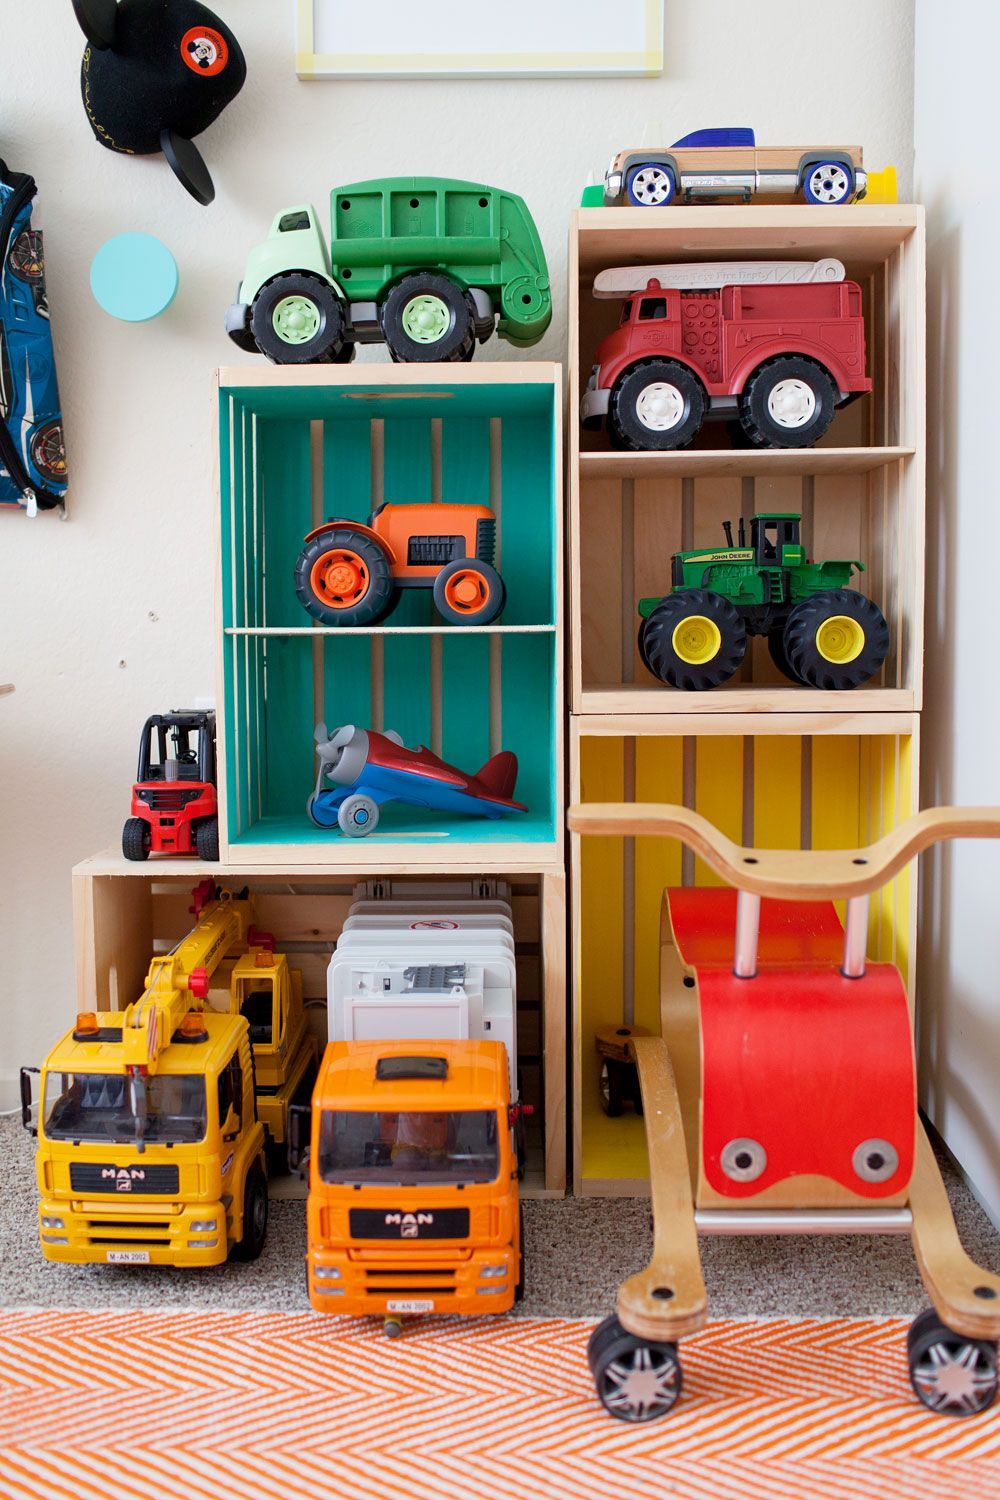 DIY Toy Storage Shelves & Boys Room Decor | Pinterest | Diy toy storage Toy storage and DIY toys